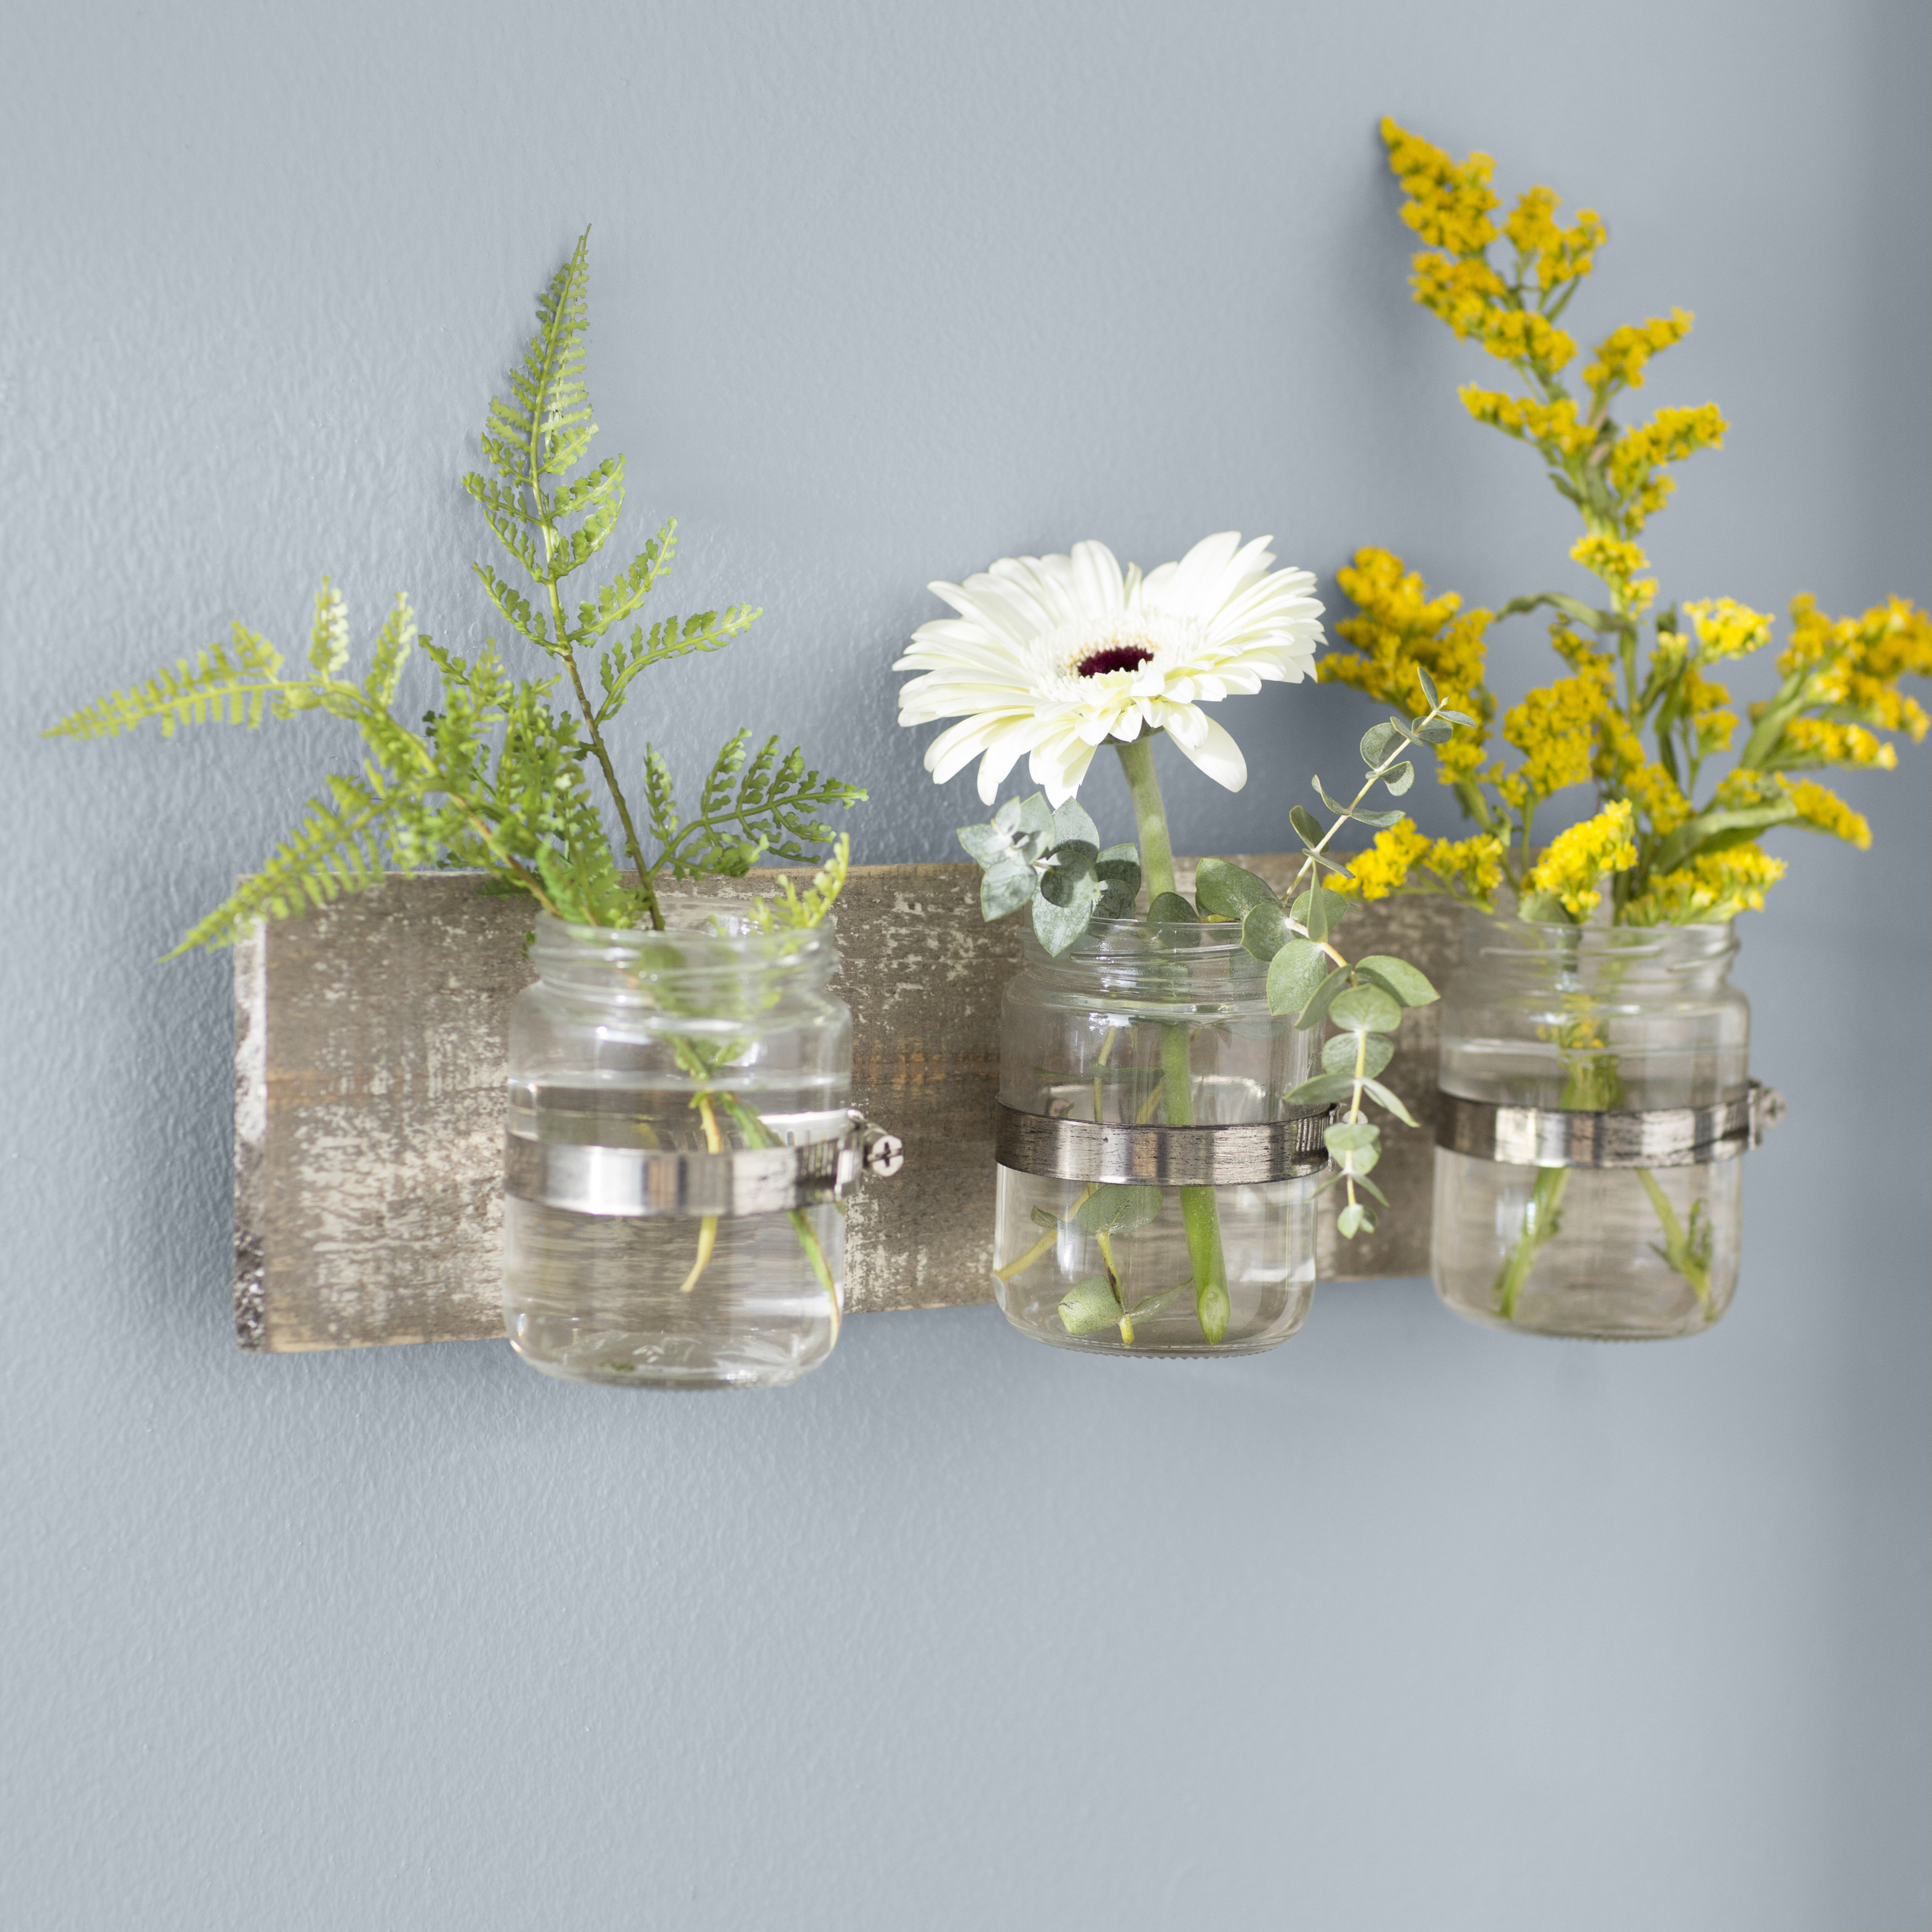 Wall Accents | Joss & Main Throughout Farm Metal Wall Rack And 3 Tin Pot With Hanger Wall Decor (View 18 of 30)